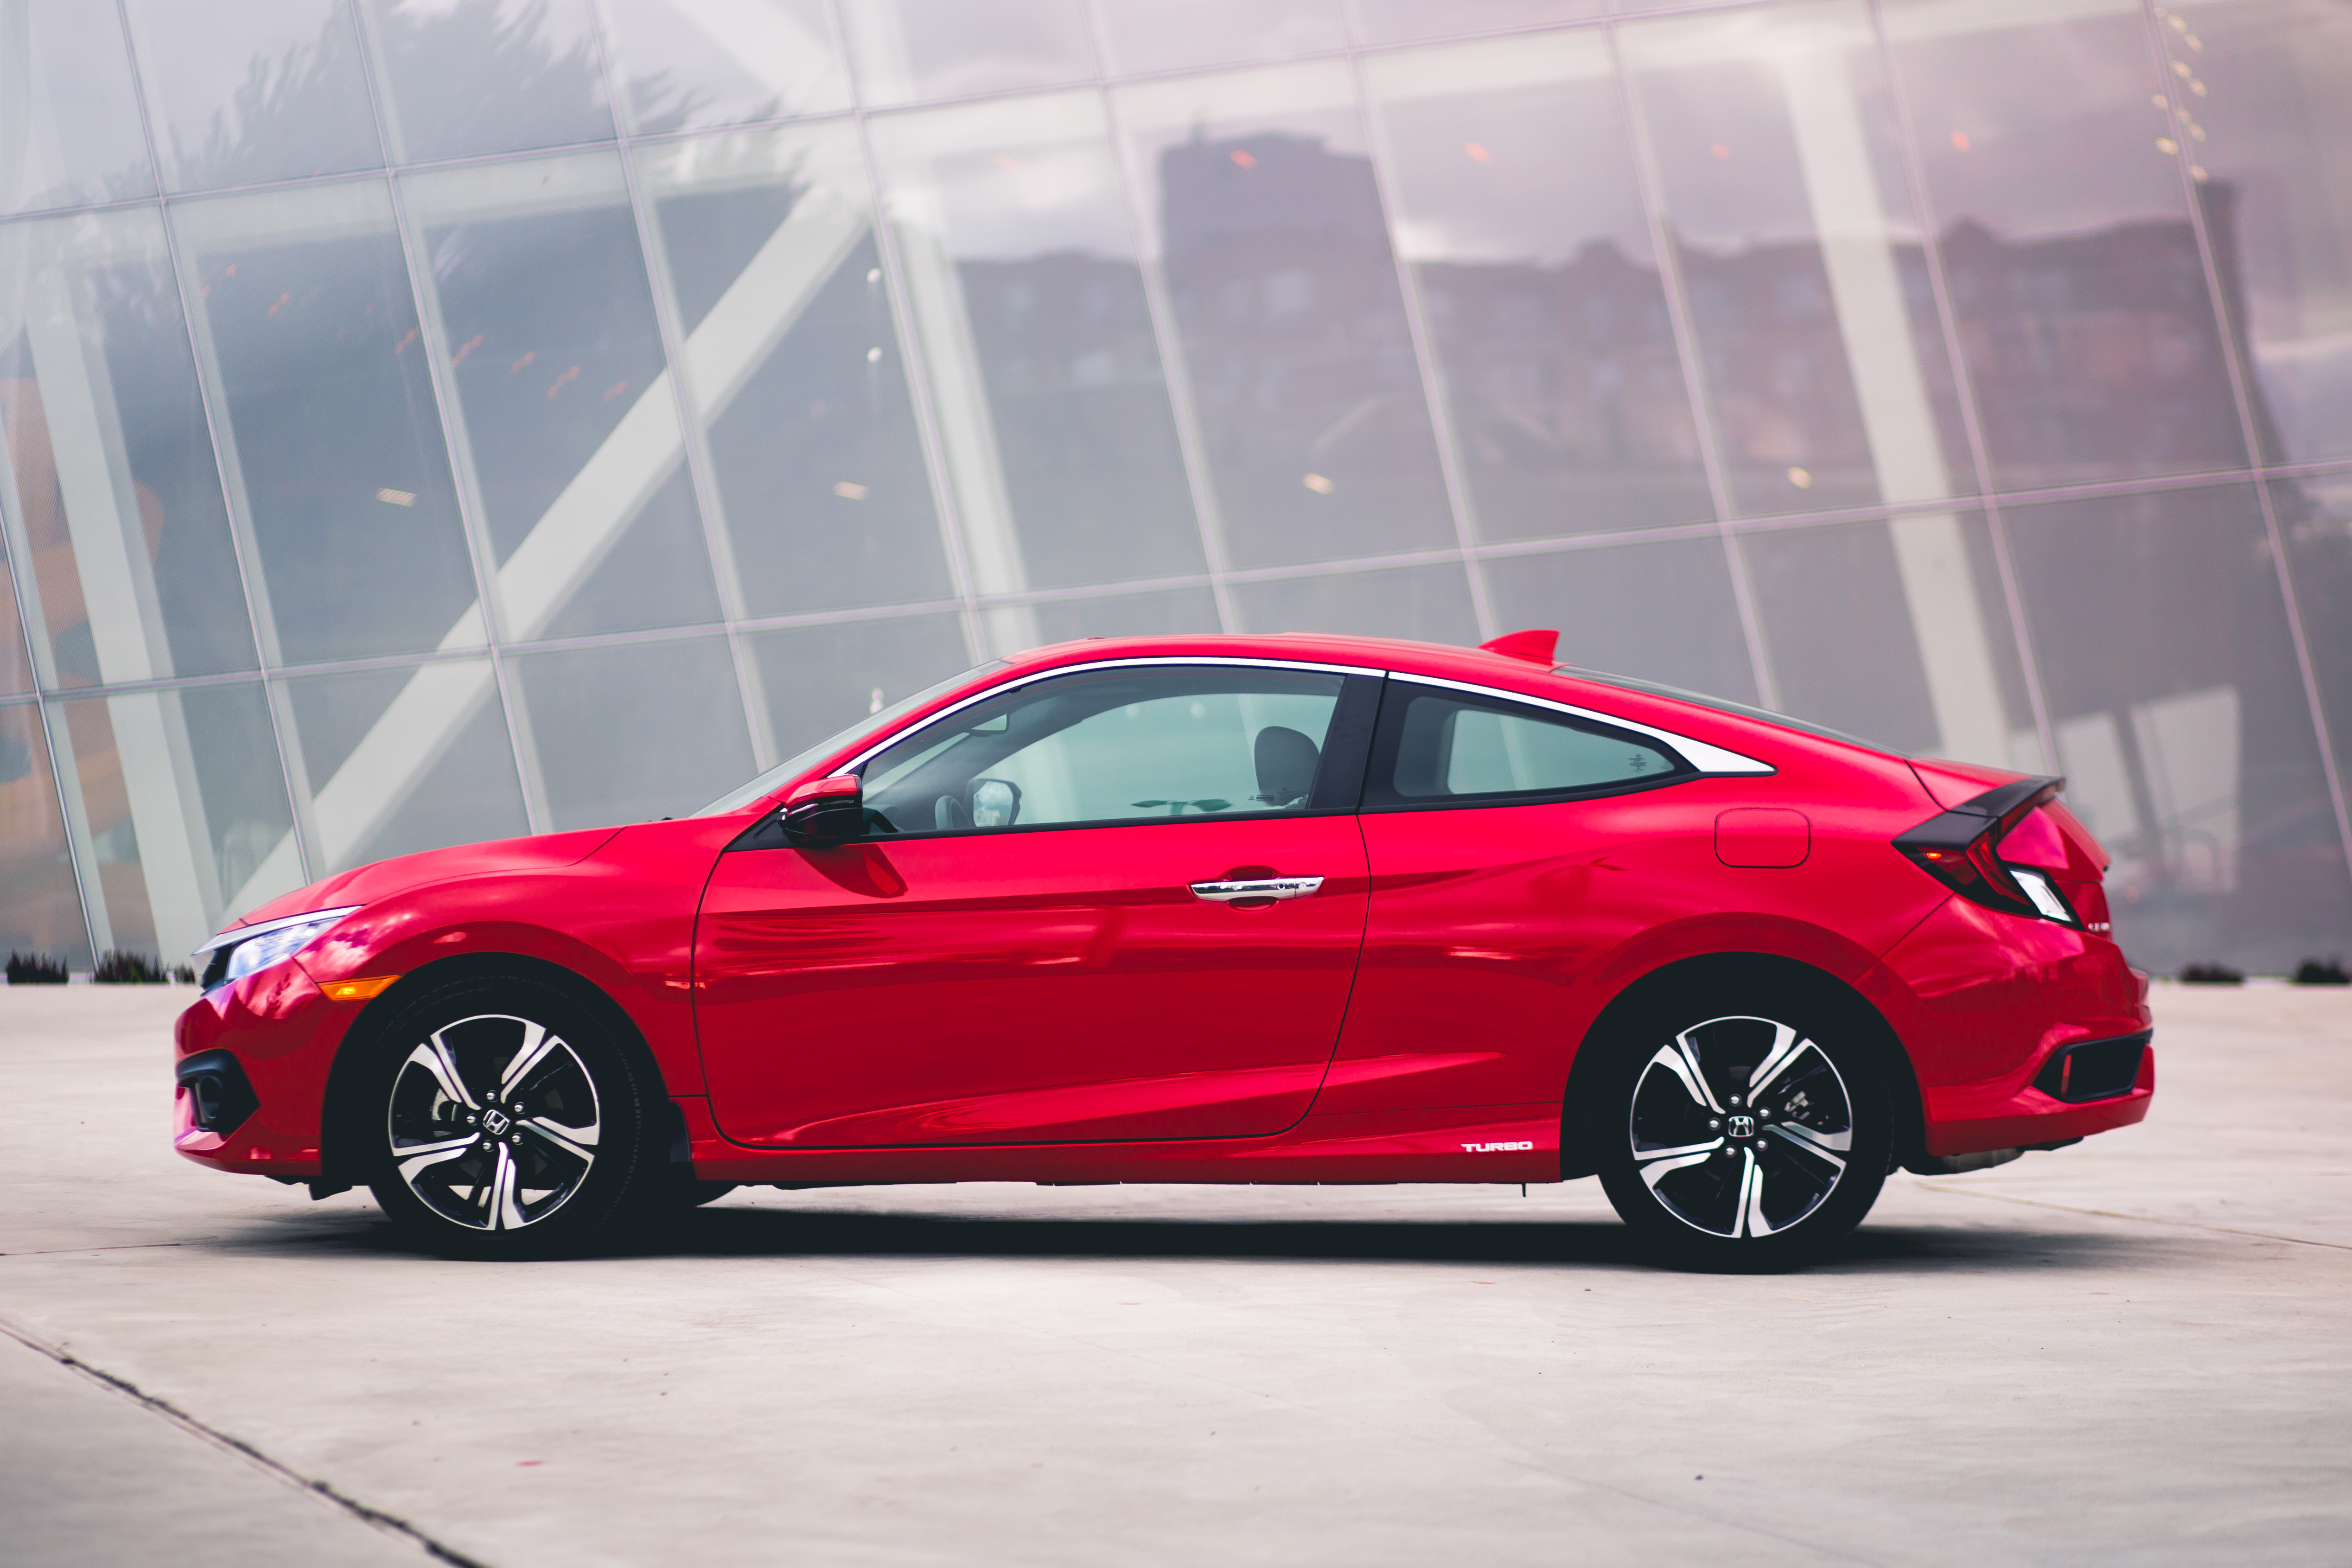 Honda Civic Coupe coupe restyling